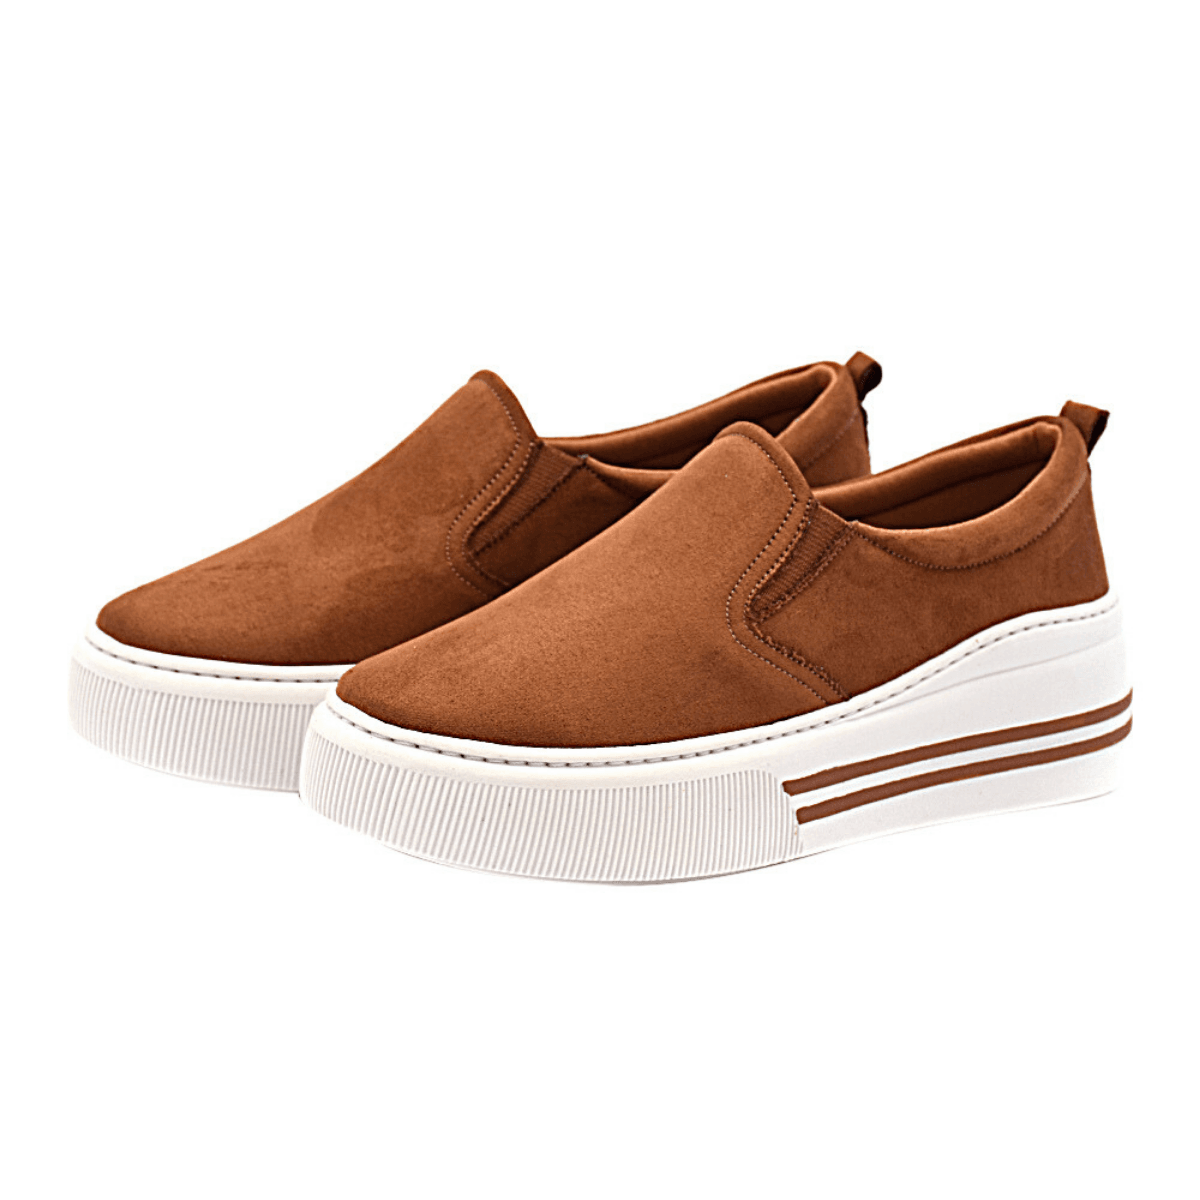 Slip On Tênis Gommix Shoes 205 Sola Alta Caramelo